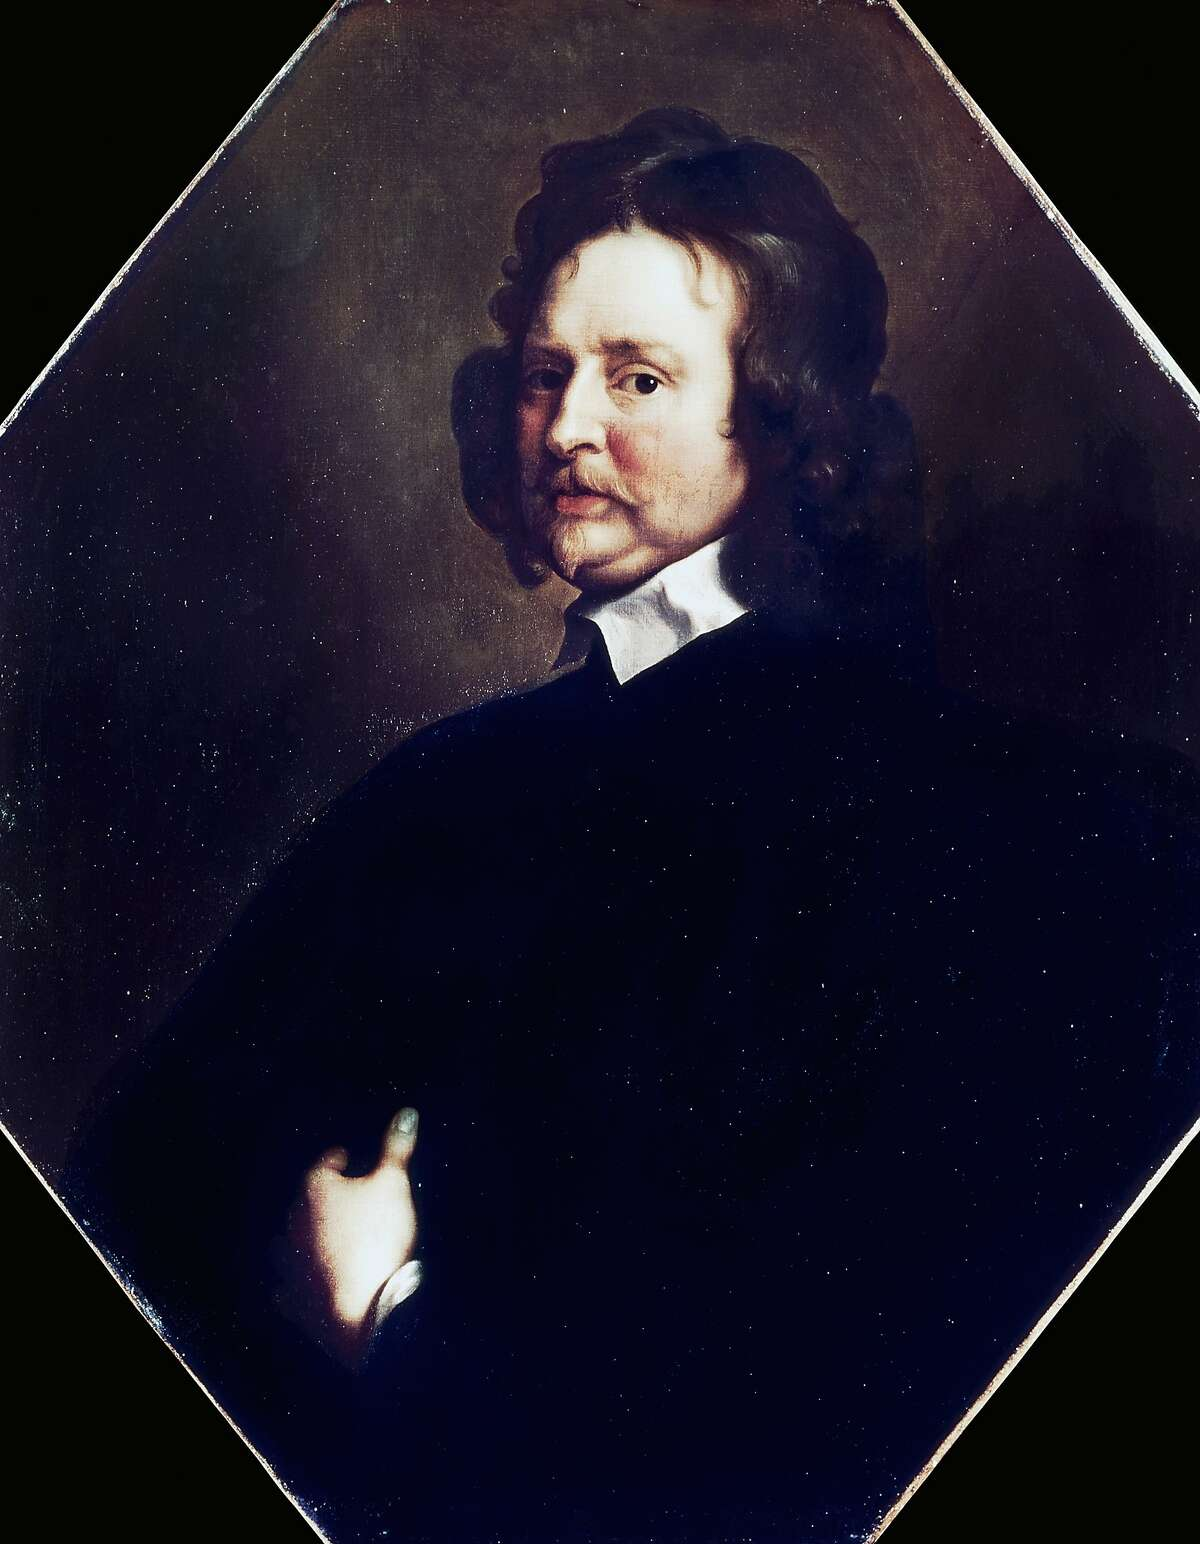 Edward Hyde, Earl of Clarendon (1609-1674), English historian and politician. Painting by Gilbert. London, National Portrait Gallery (Photo by DeAgostini/Getty Images)